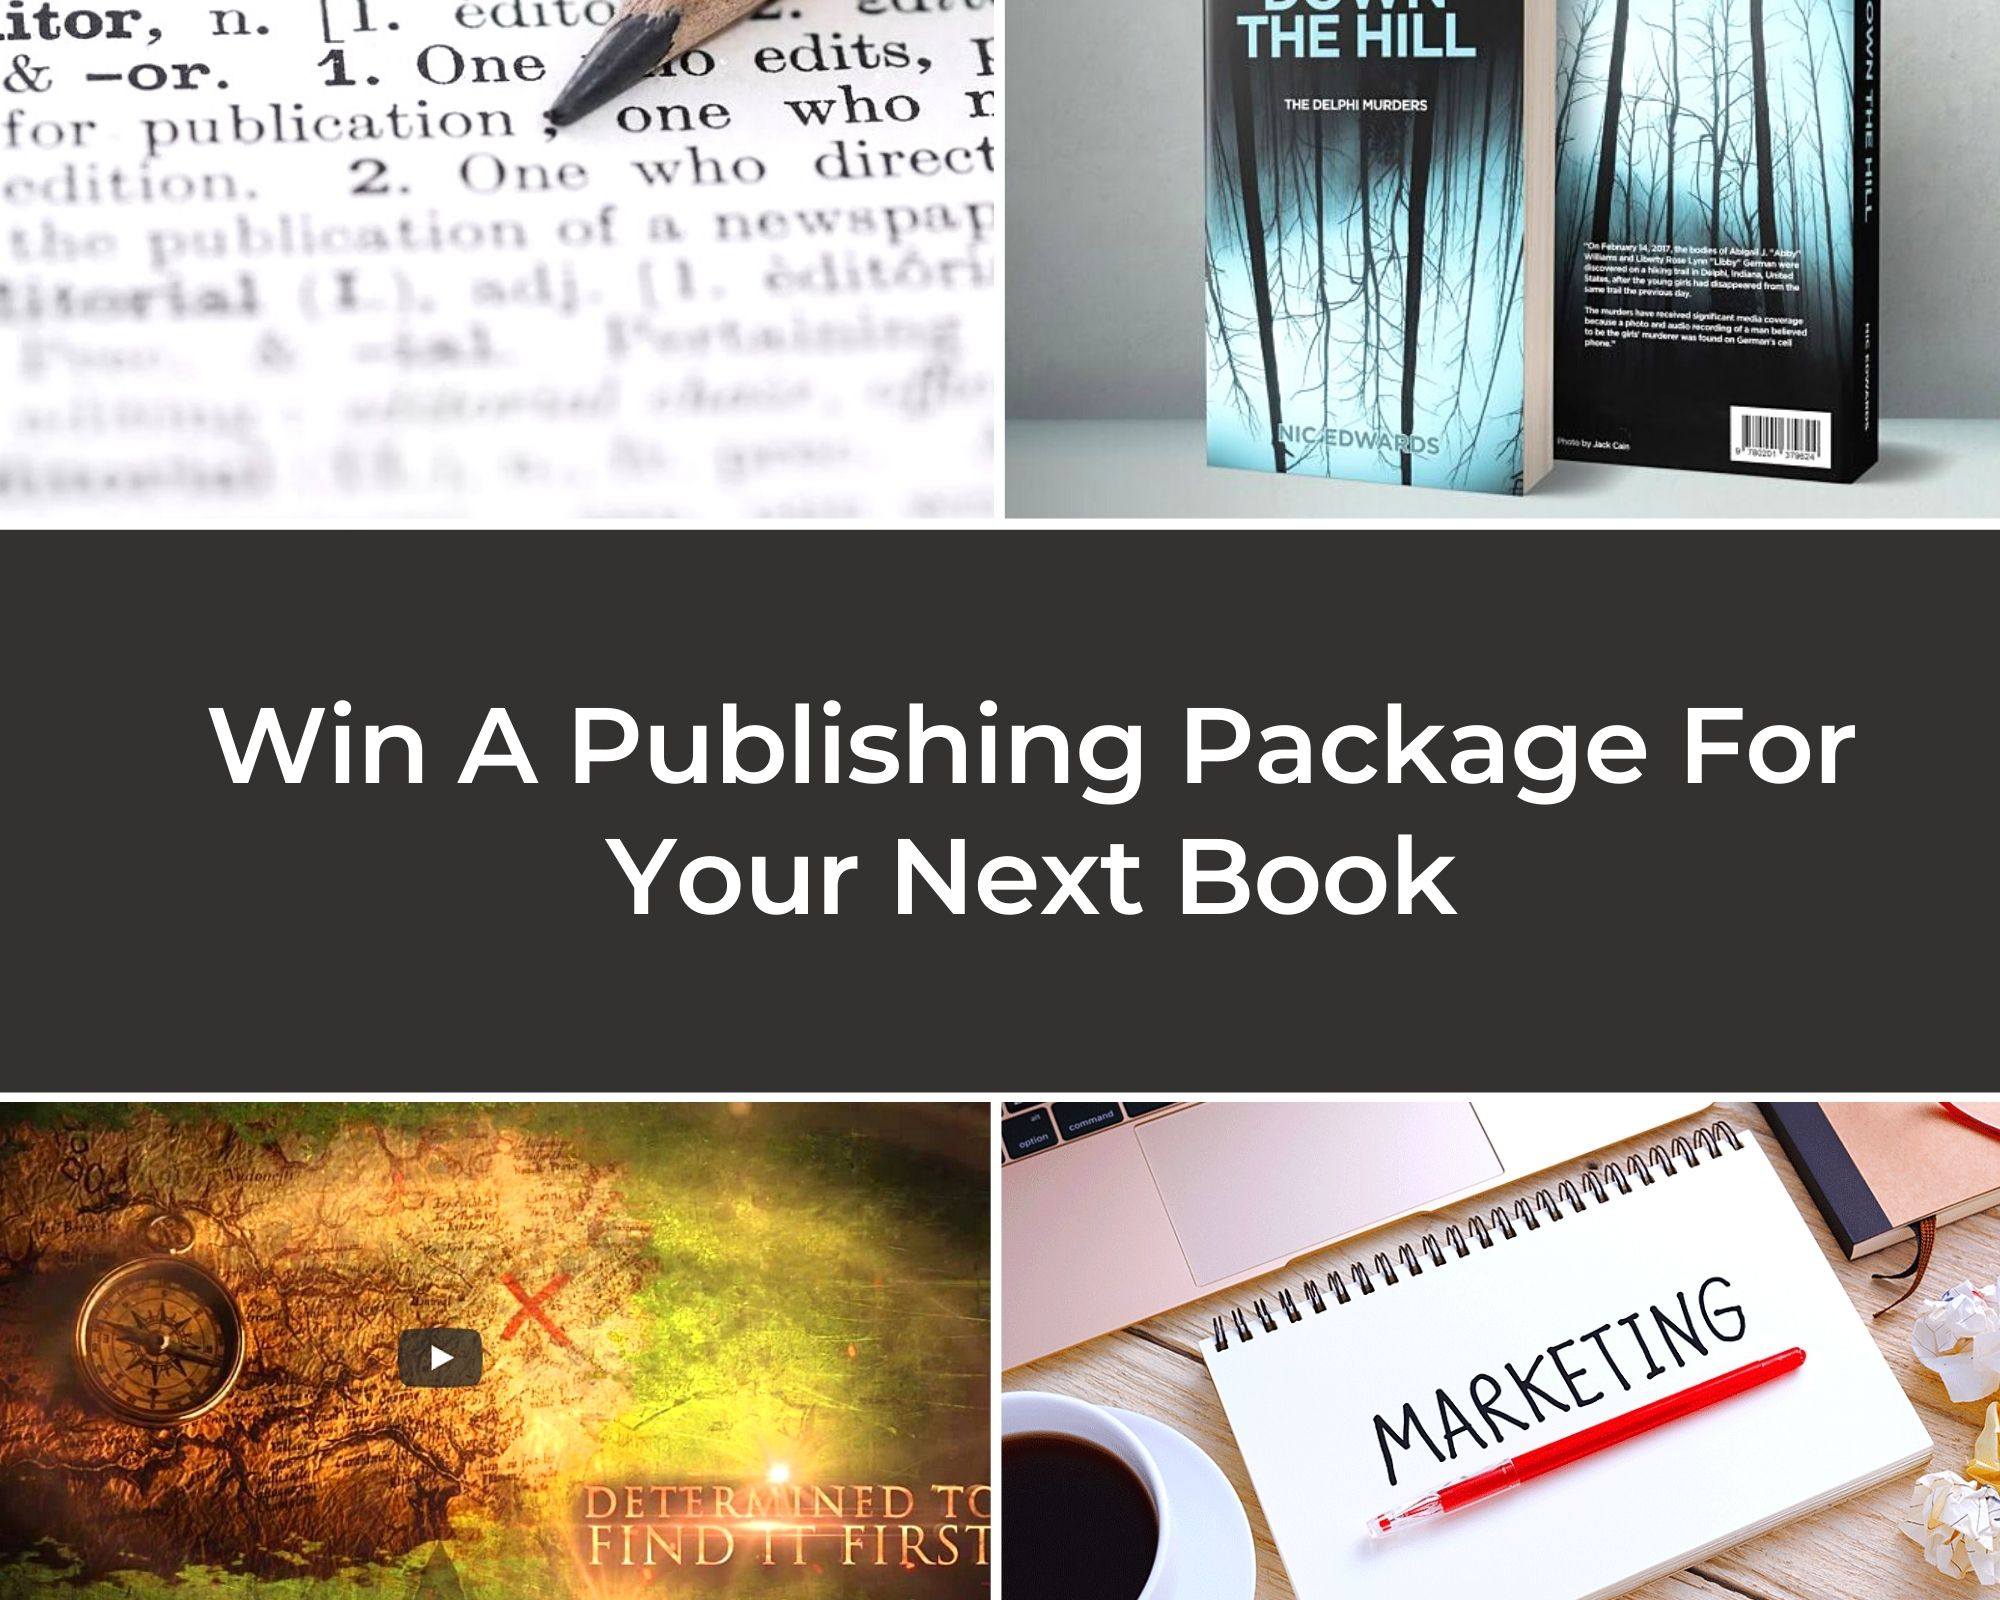 Win A Publishing Package For Your Next Book